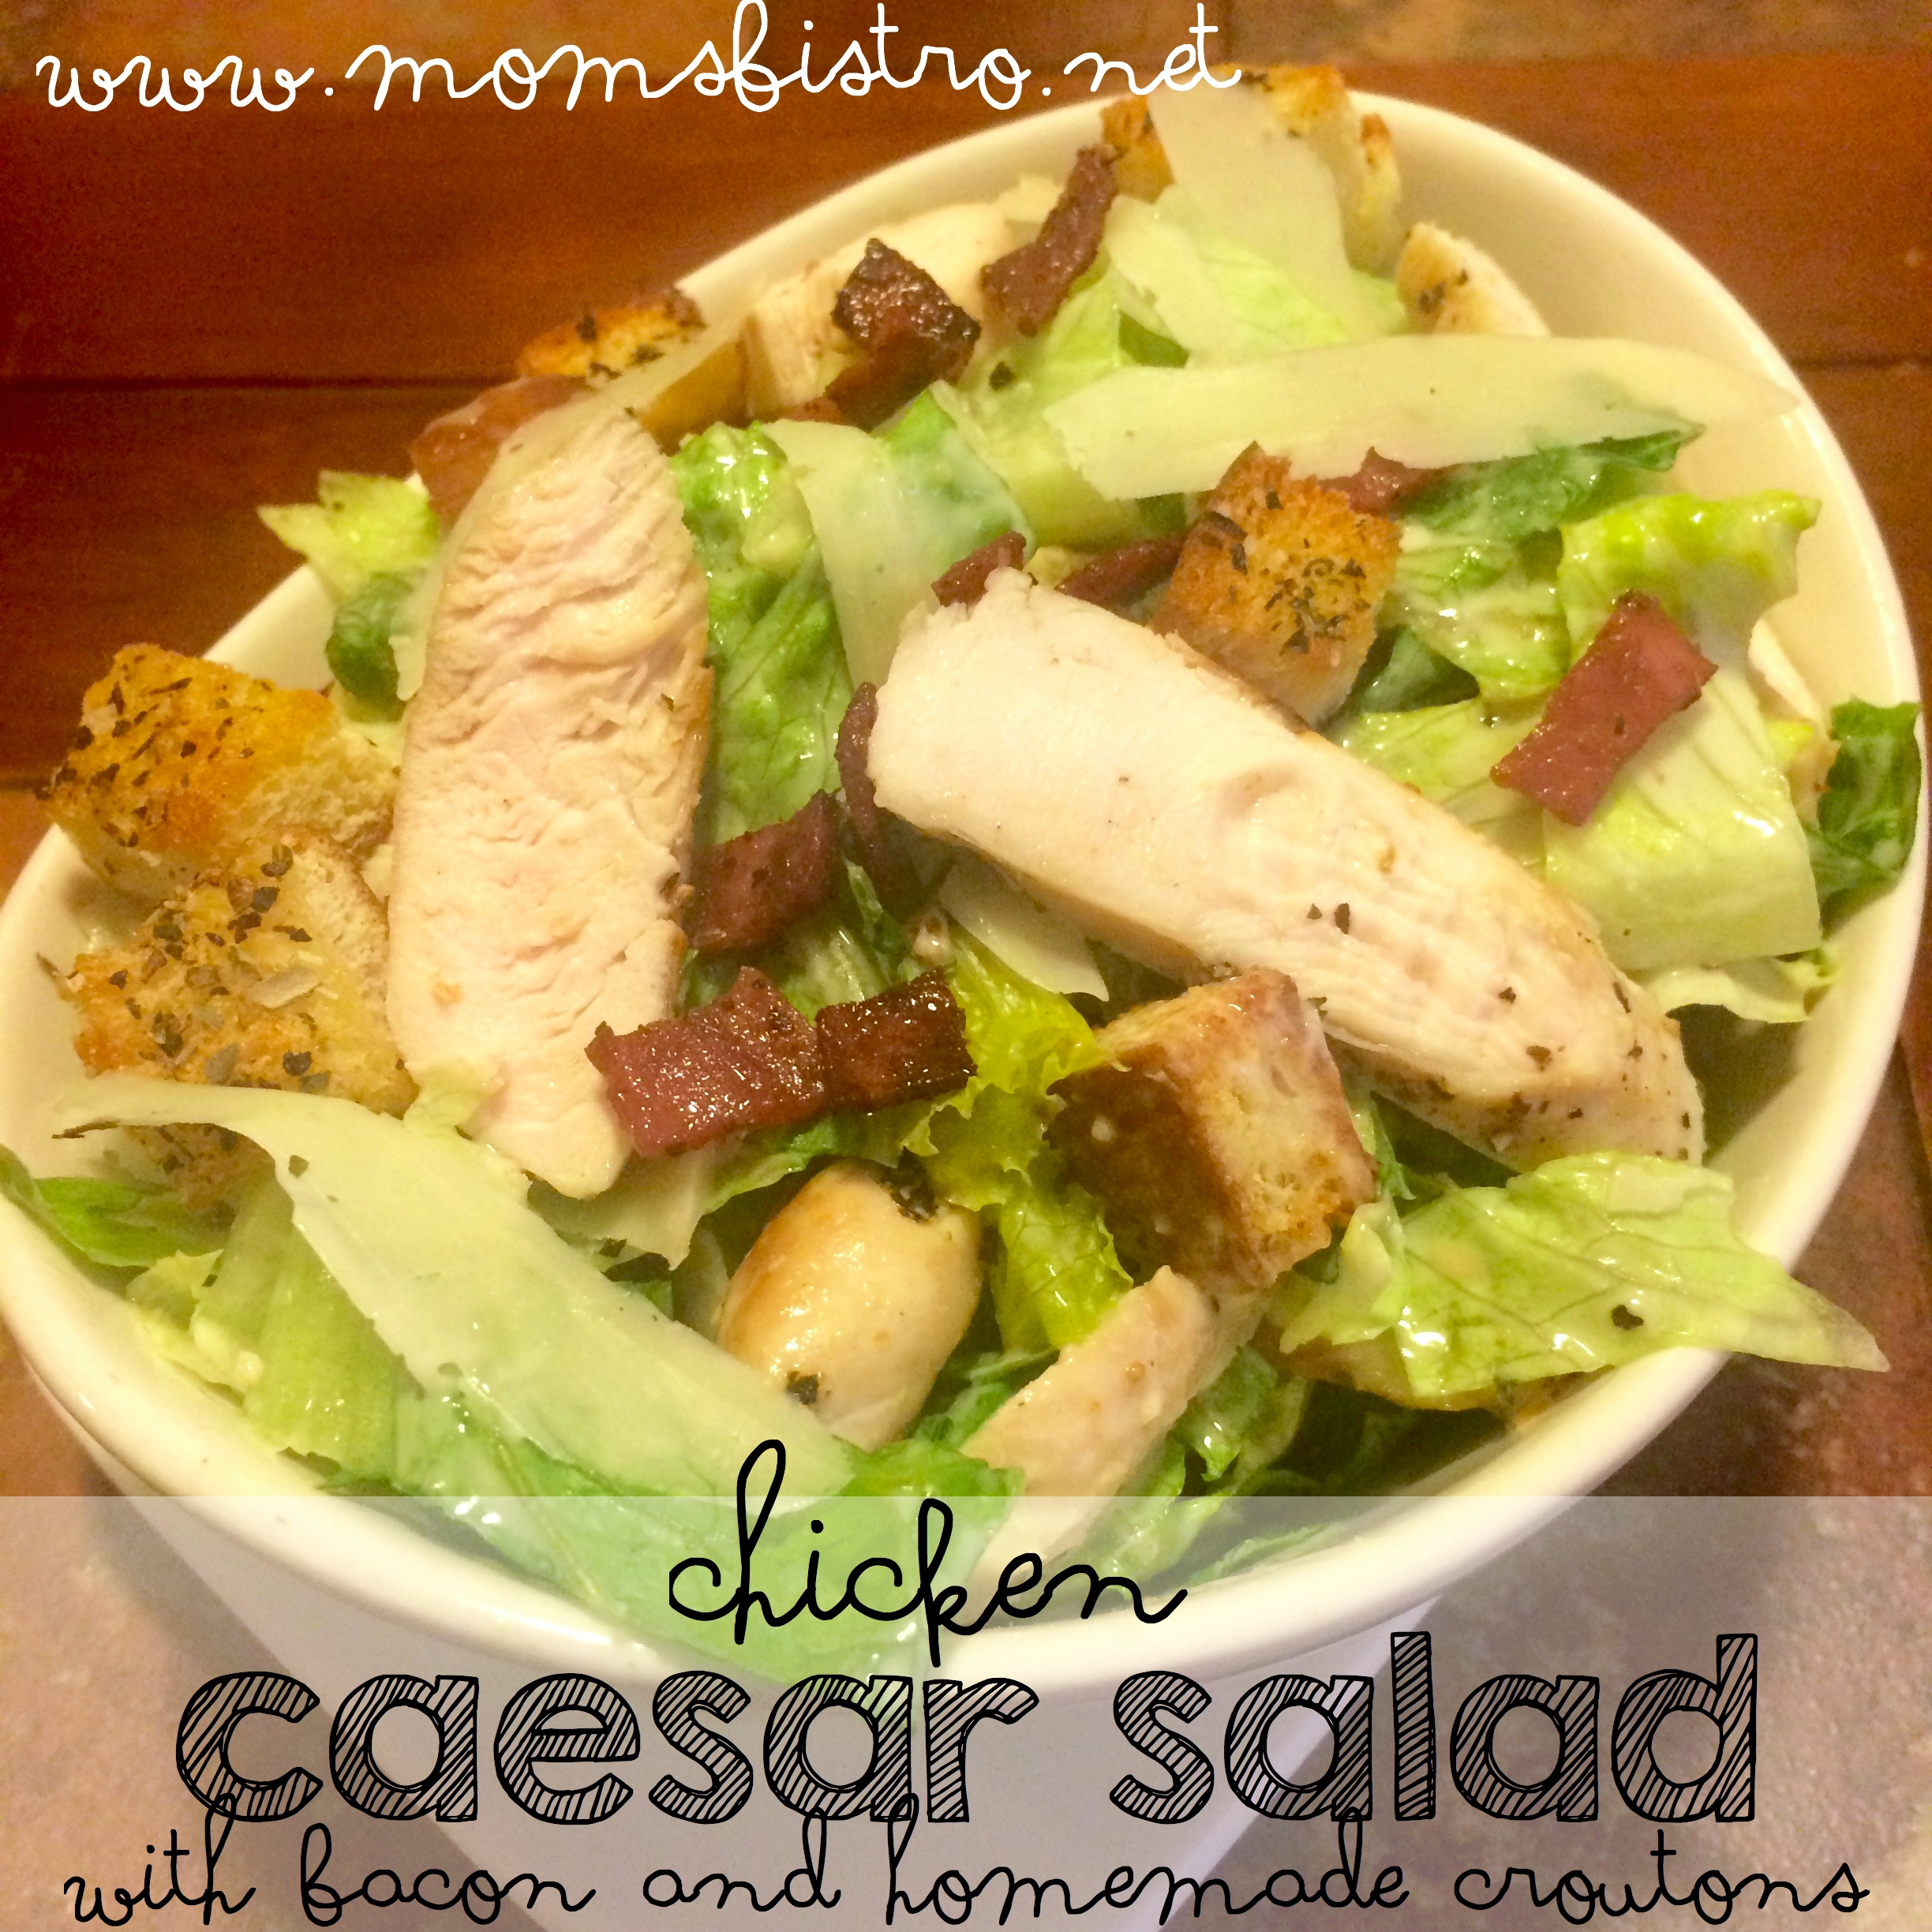 Classic Chicken Caesar Salad Recipe with Bacon and Homemade Croutons